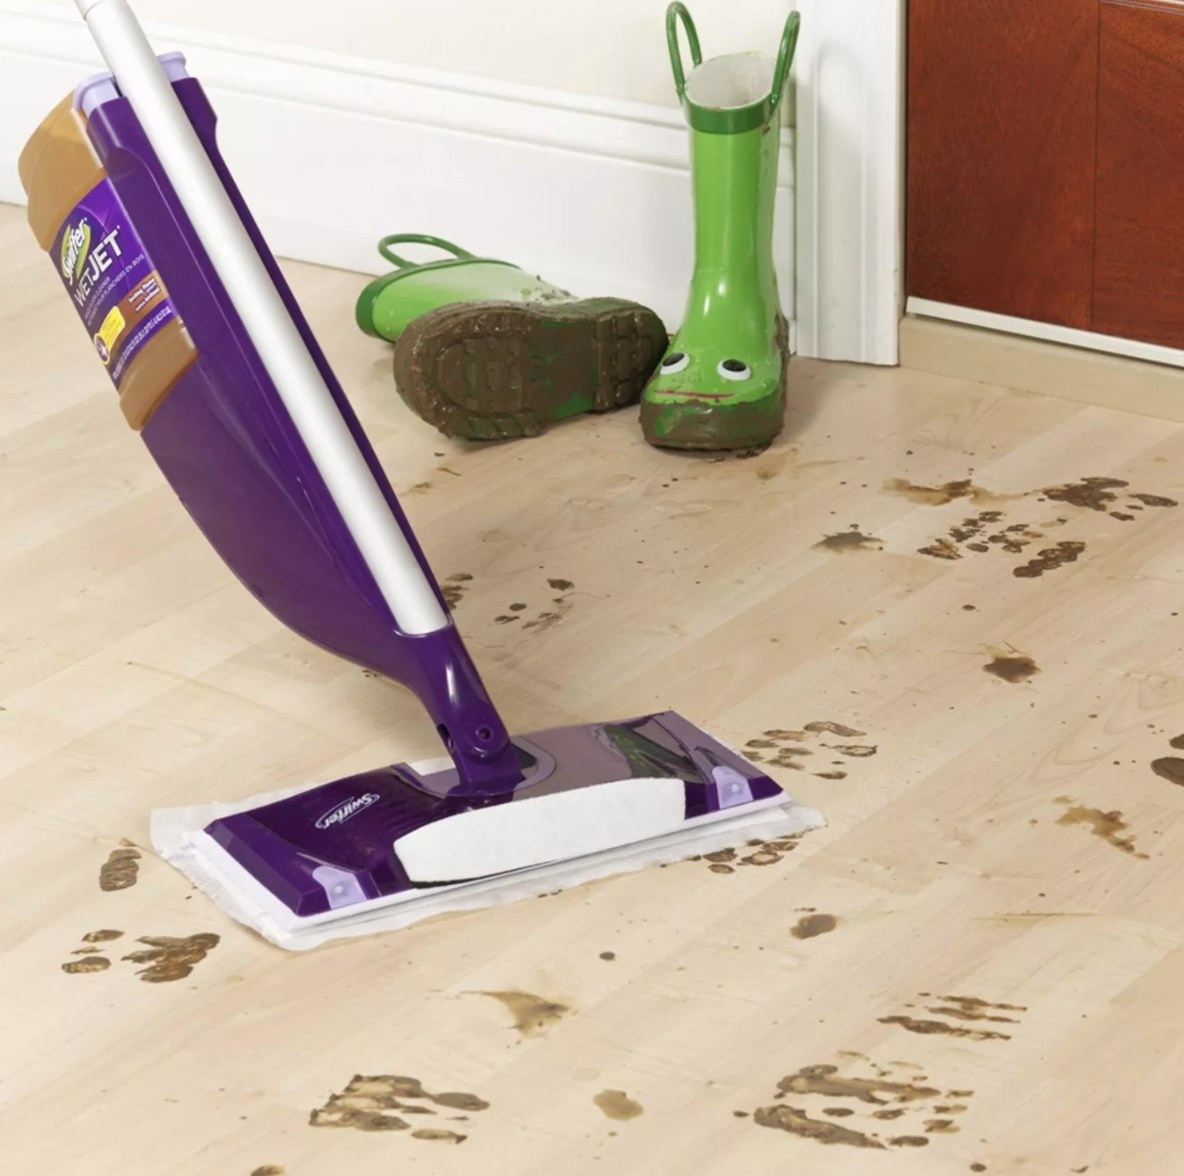 The swiffer being used to clean muddy footprints